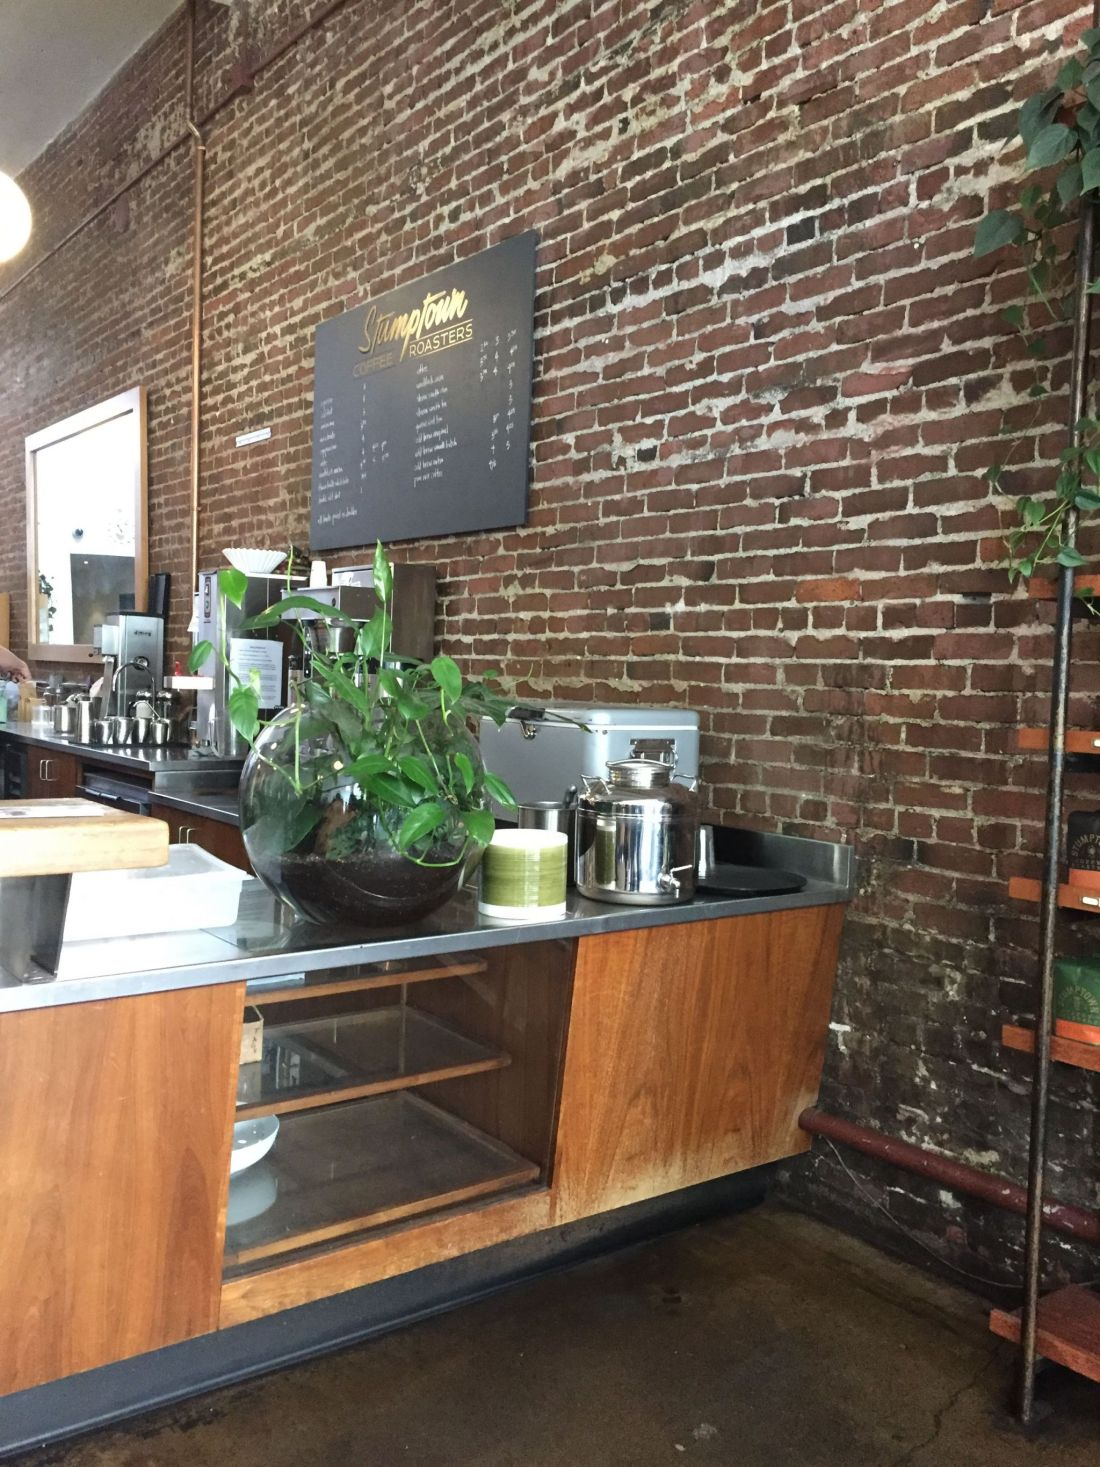 Stumptown Coffee Roasters, Portland